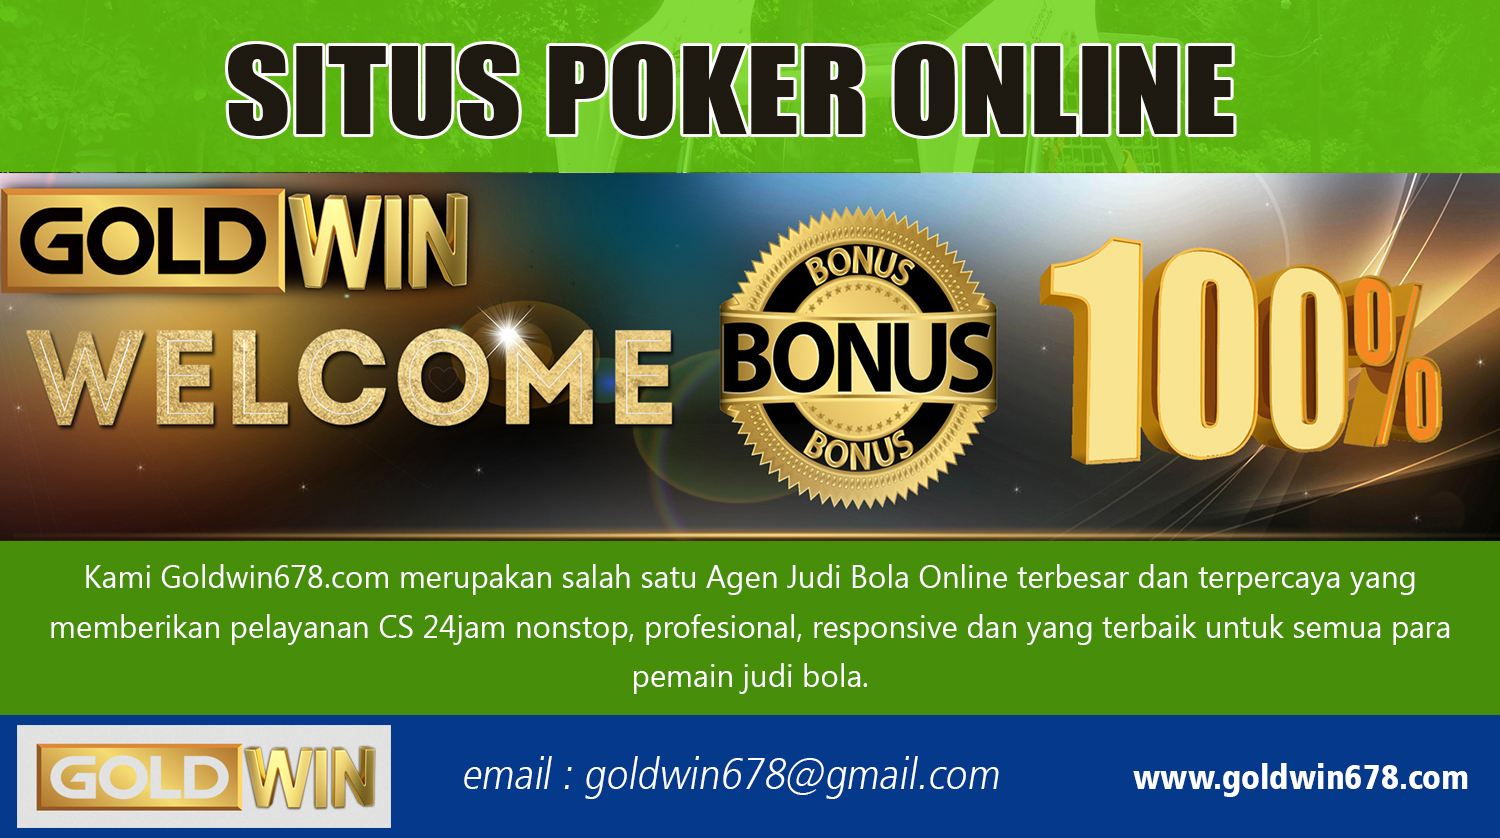 "<strong>situs<\/strong> poker online"" style=""max-width:430px;float:left;padding:10px 10px 10px 0px;border:0px;""><center><img src="